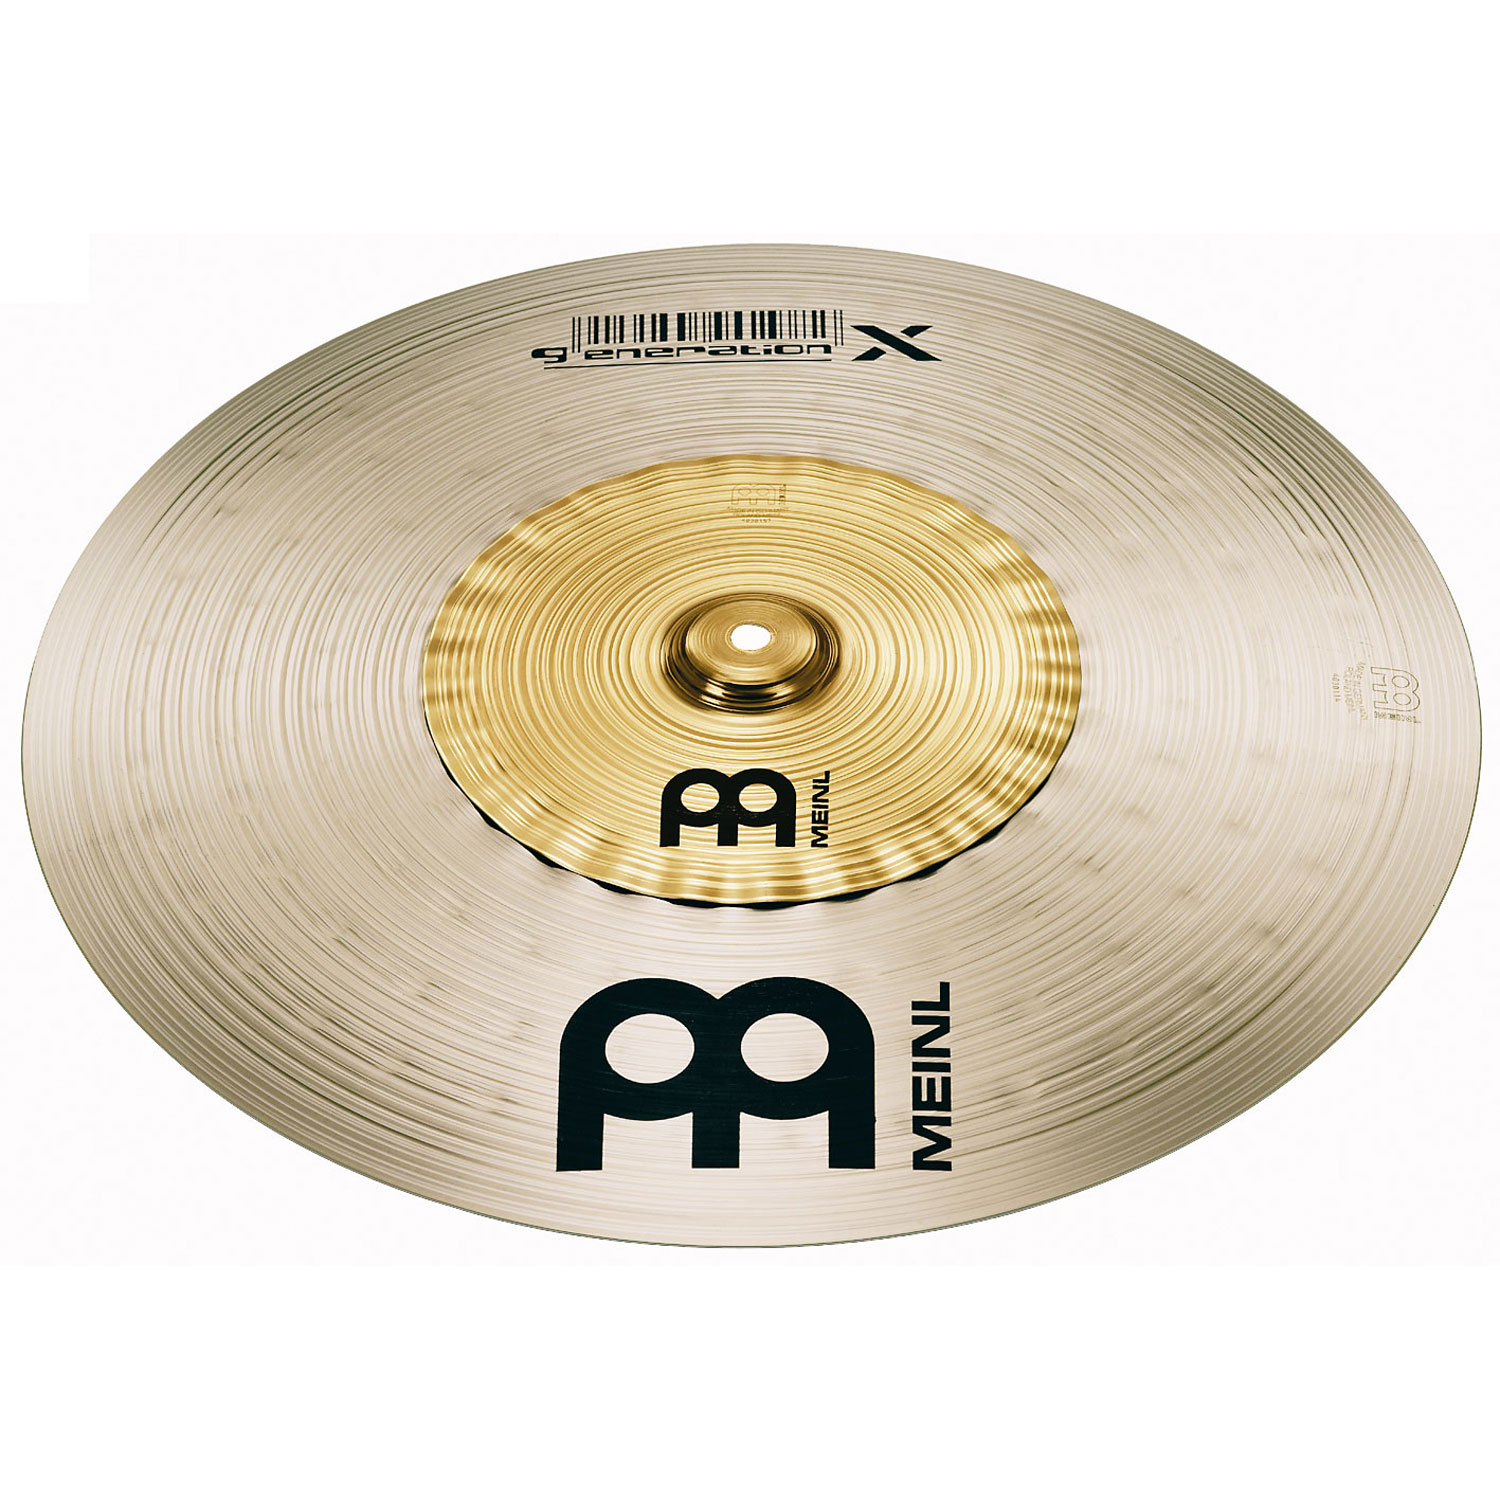 "Meinl 18"" Generation X Safari Ride Cymbal"